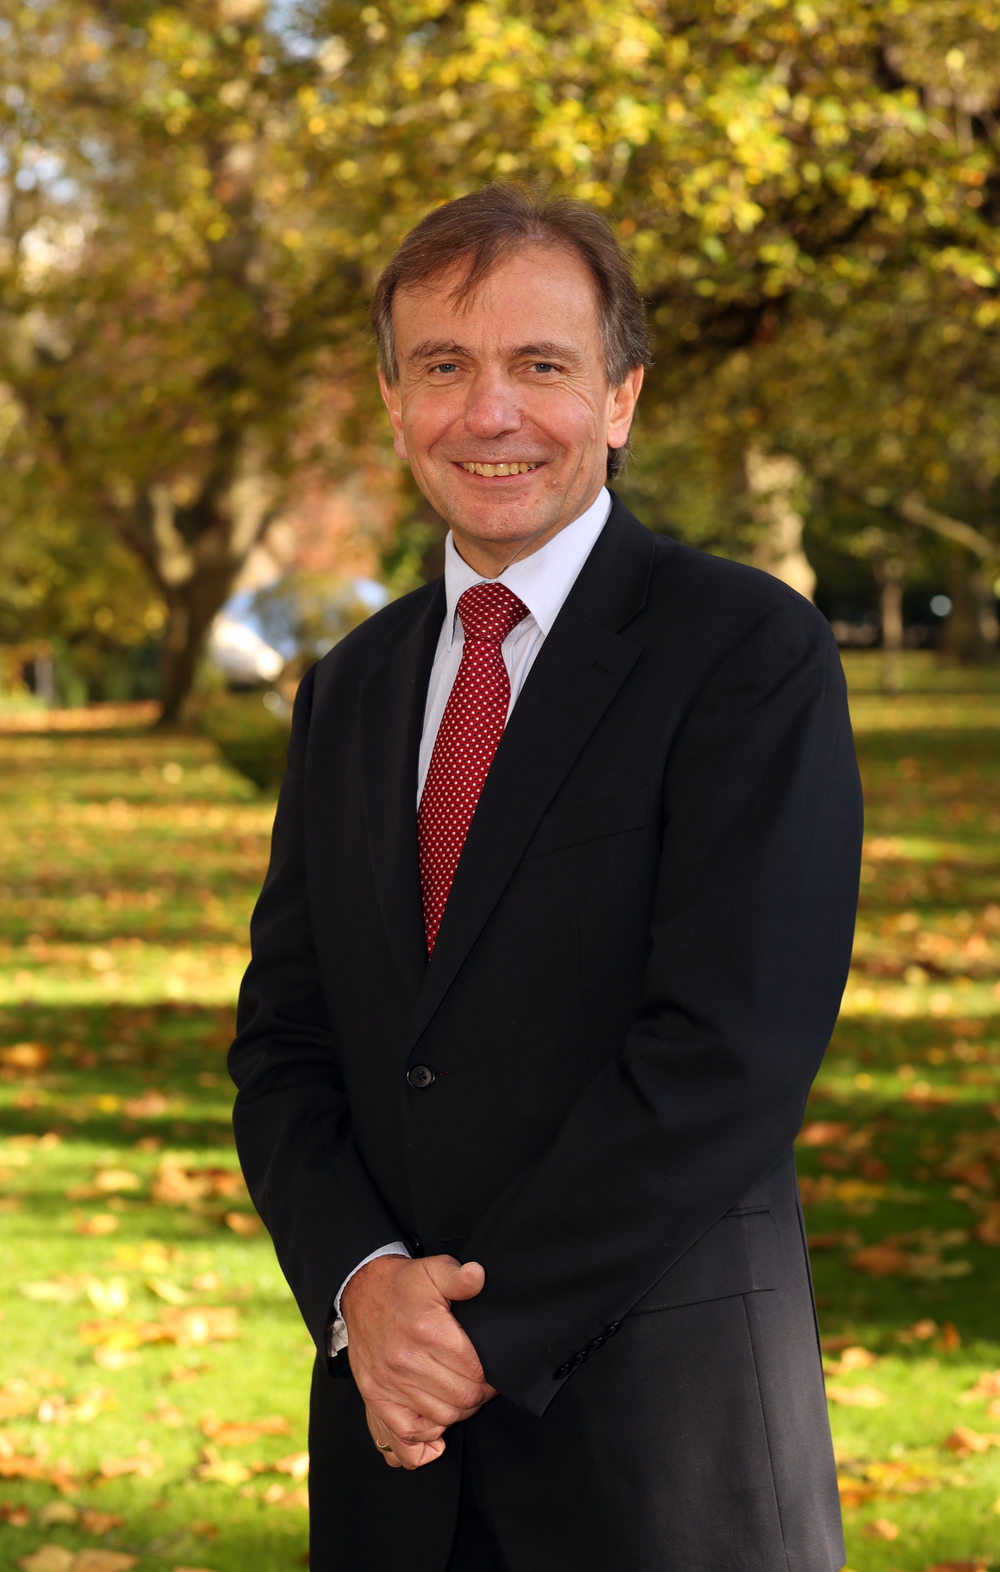 NIGEL HUGHES Is a Chartered Building Surveyor who joined Grosvenor in 1985 since when he has held a number of senior roles, principally focused on the London Estate. In his current role as The Estate Surveyor, Nigel's principal remit is to ensure that Mayfair and Belgravia continue to thrive as sustainable urban villages in the 21st Century. Nigel is a Trustee of the Grosvenor Pension Scheme, a Director of the Better Buildings Partnership and Vice-Chair of the Victoria Business Improvement District. He lives in Kingston Upon Thames and is married with one son.